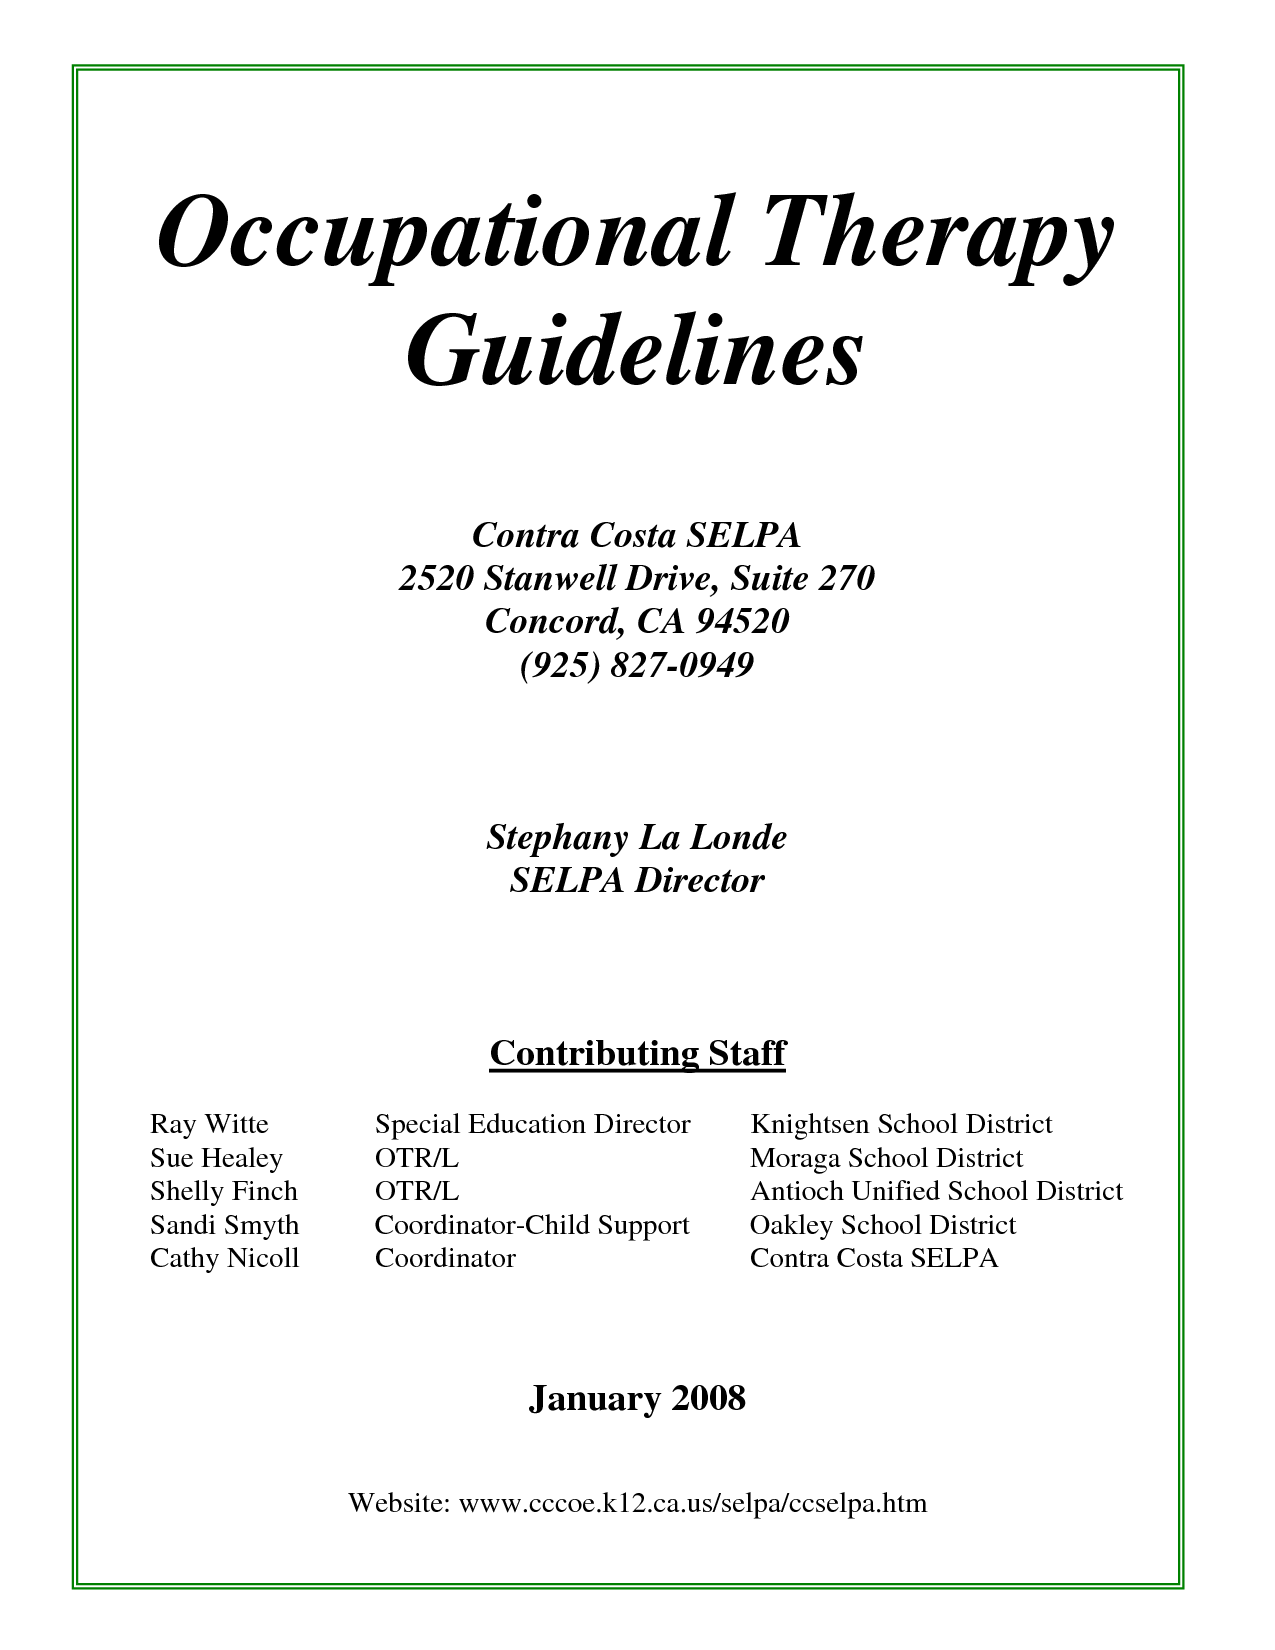 17 Best Images of Career Exploration   Therapy worksheets ...